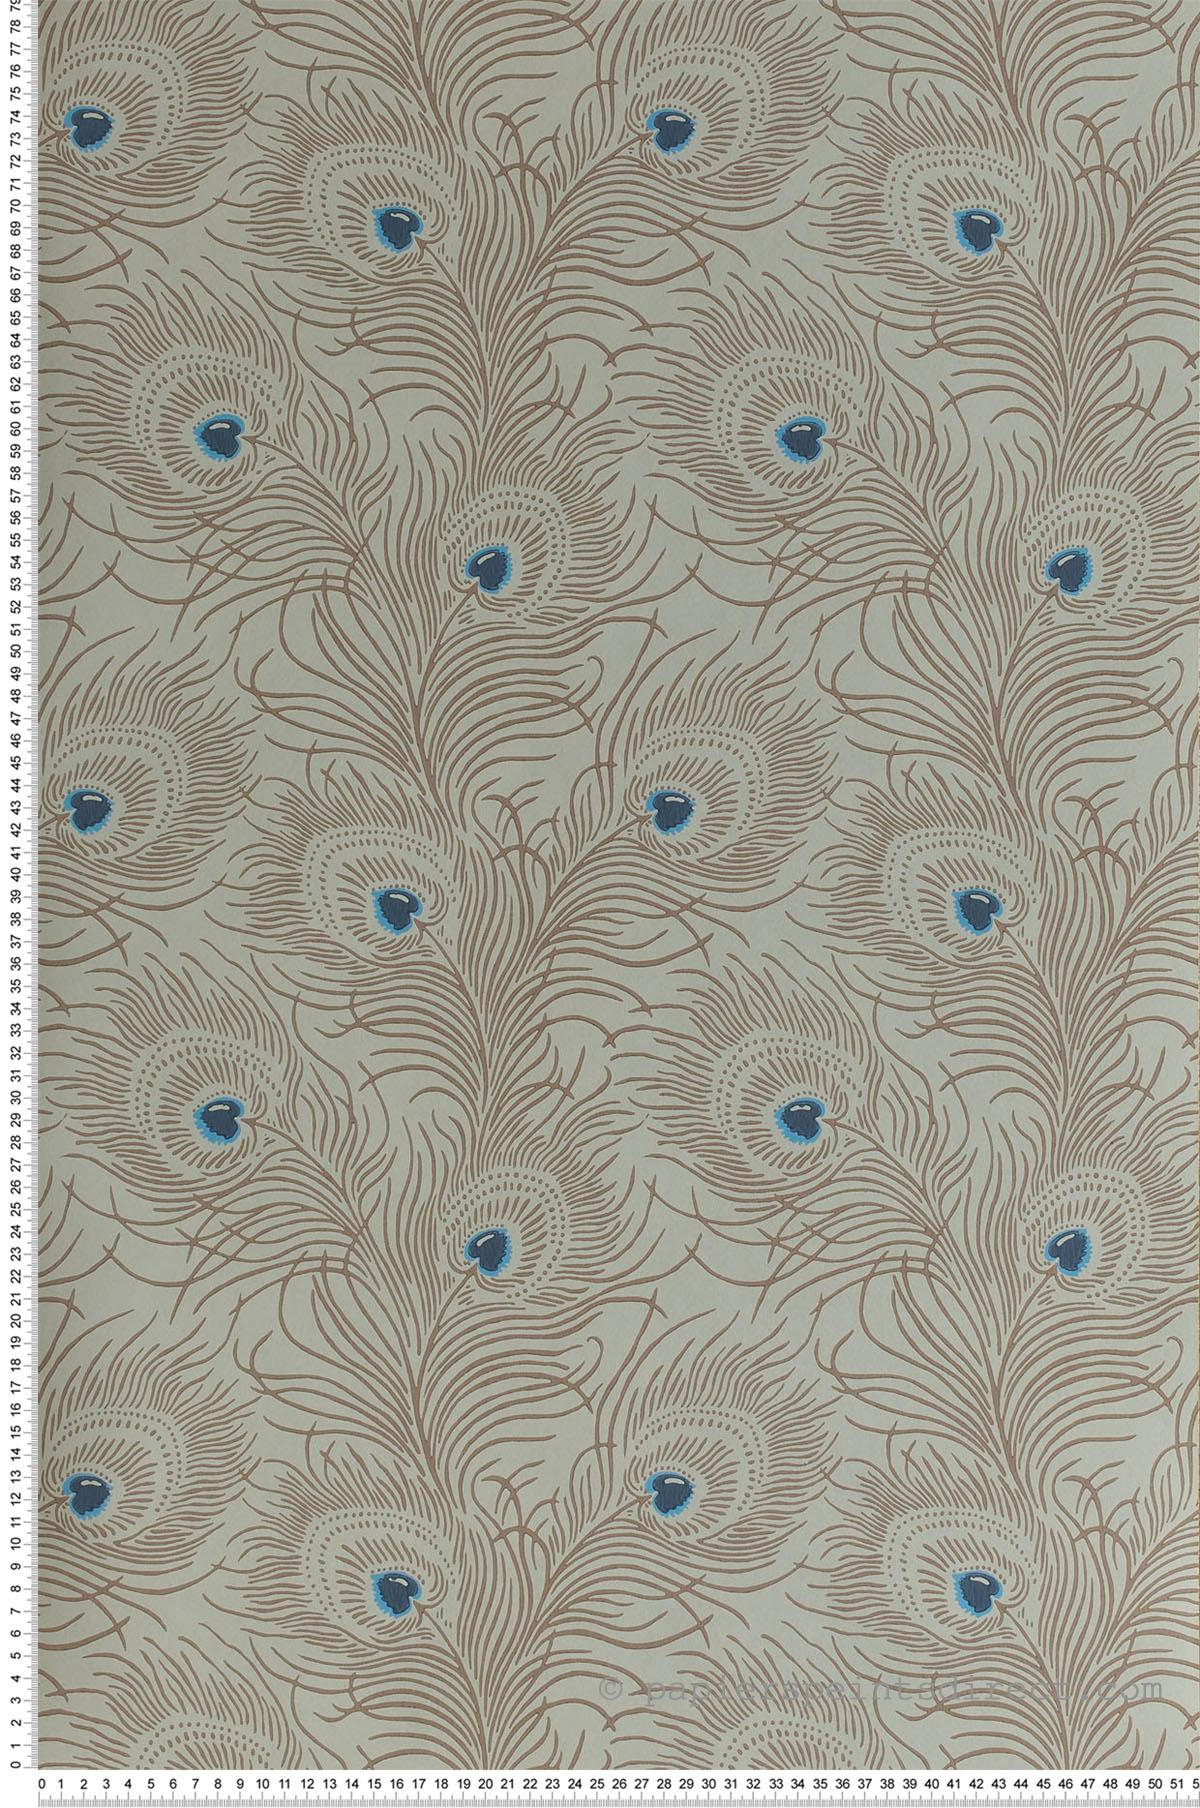 Papier peint Carlton House Terrace Copper - Collection London Wallpapers V de Little Greene